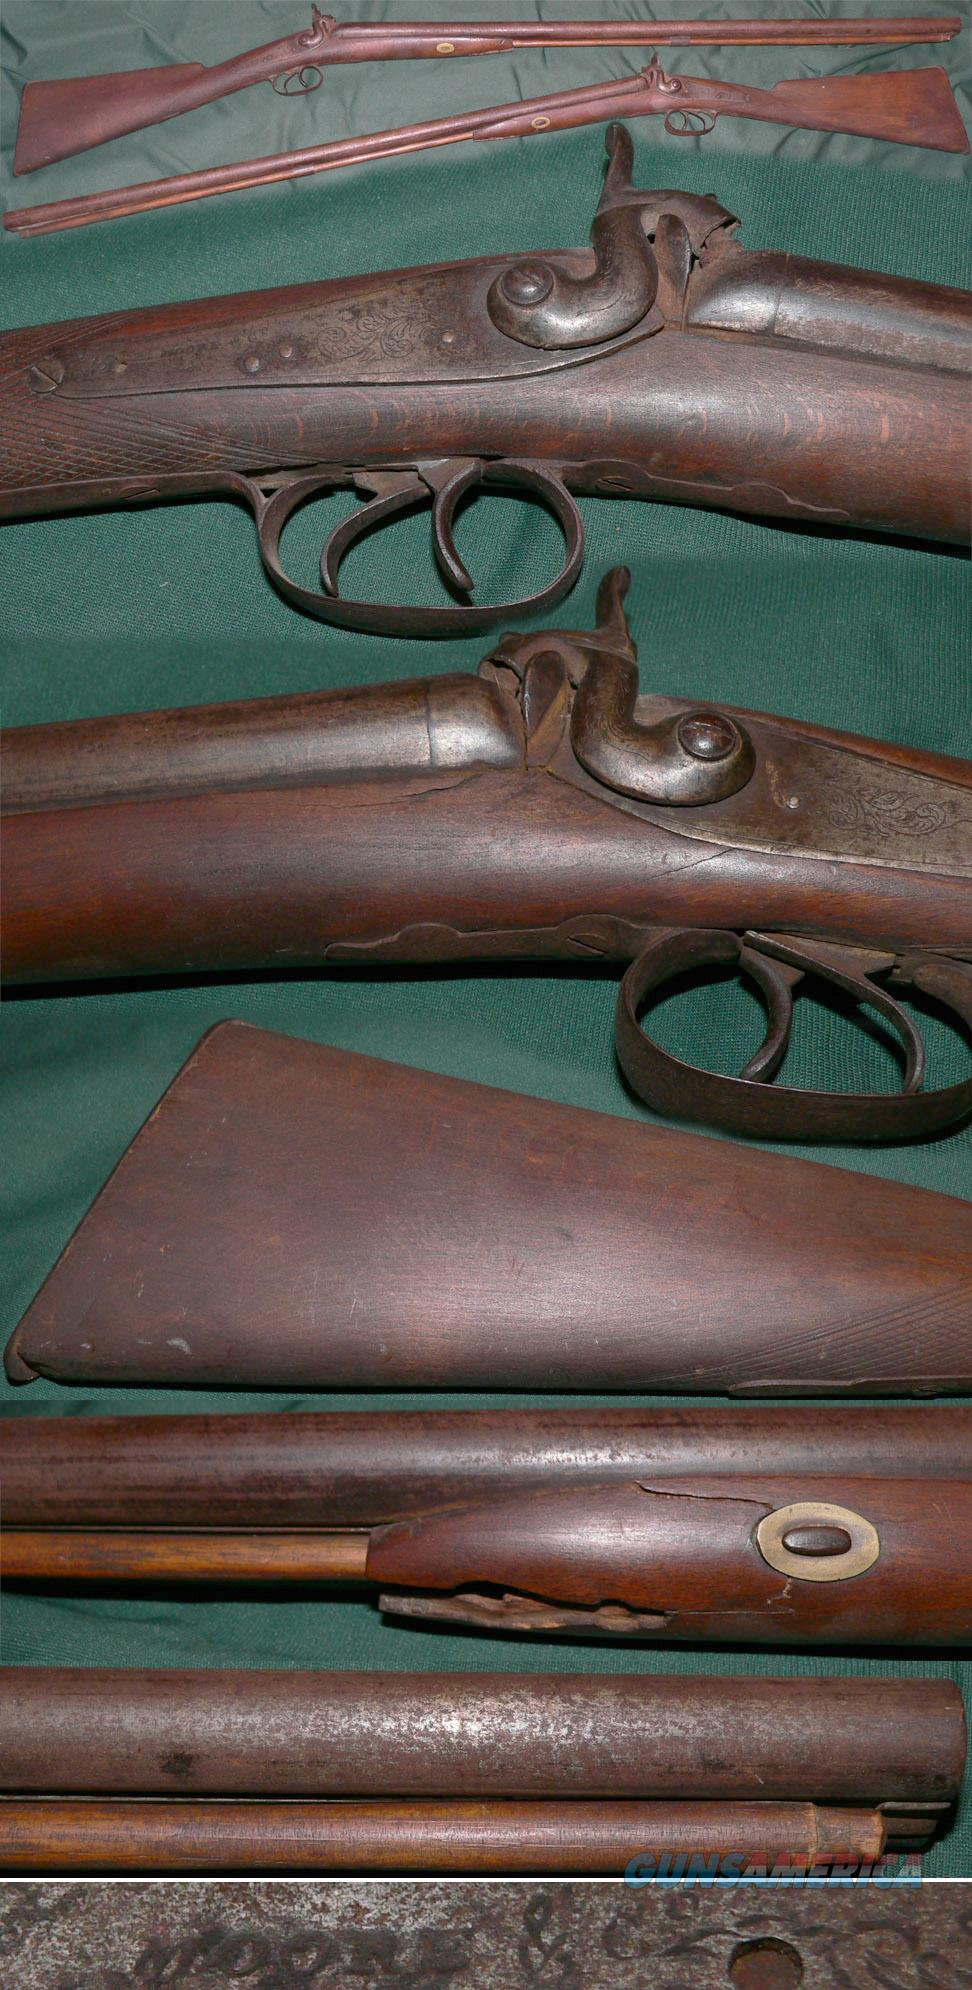 W.Moore London percussion double  Guns > Shotguns > Muzzleloading Pre-1899 Shotguns